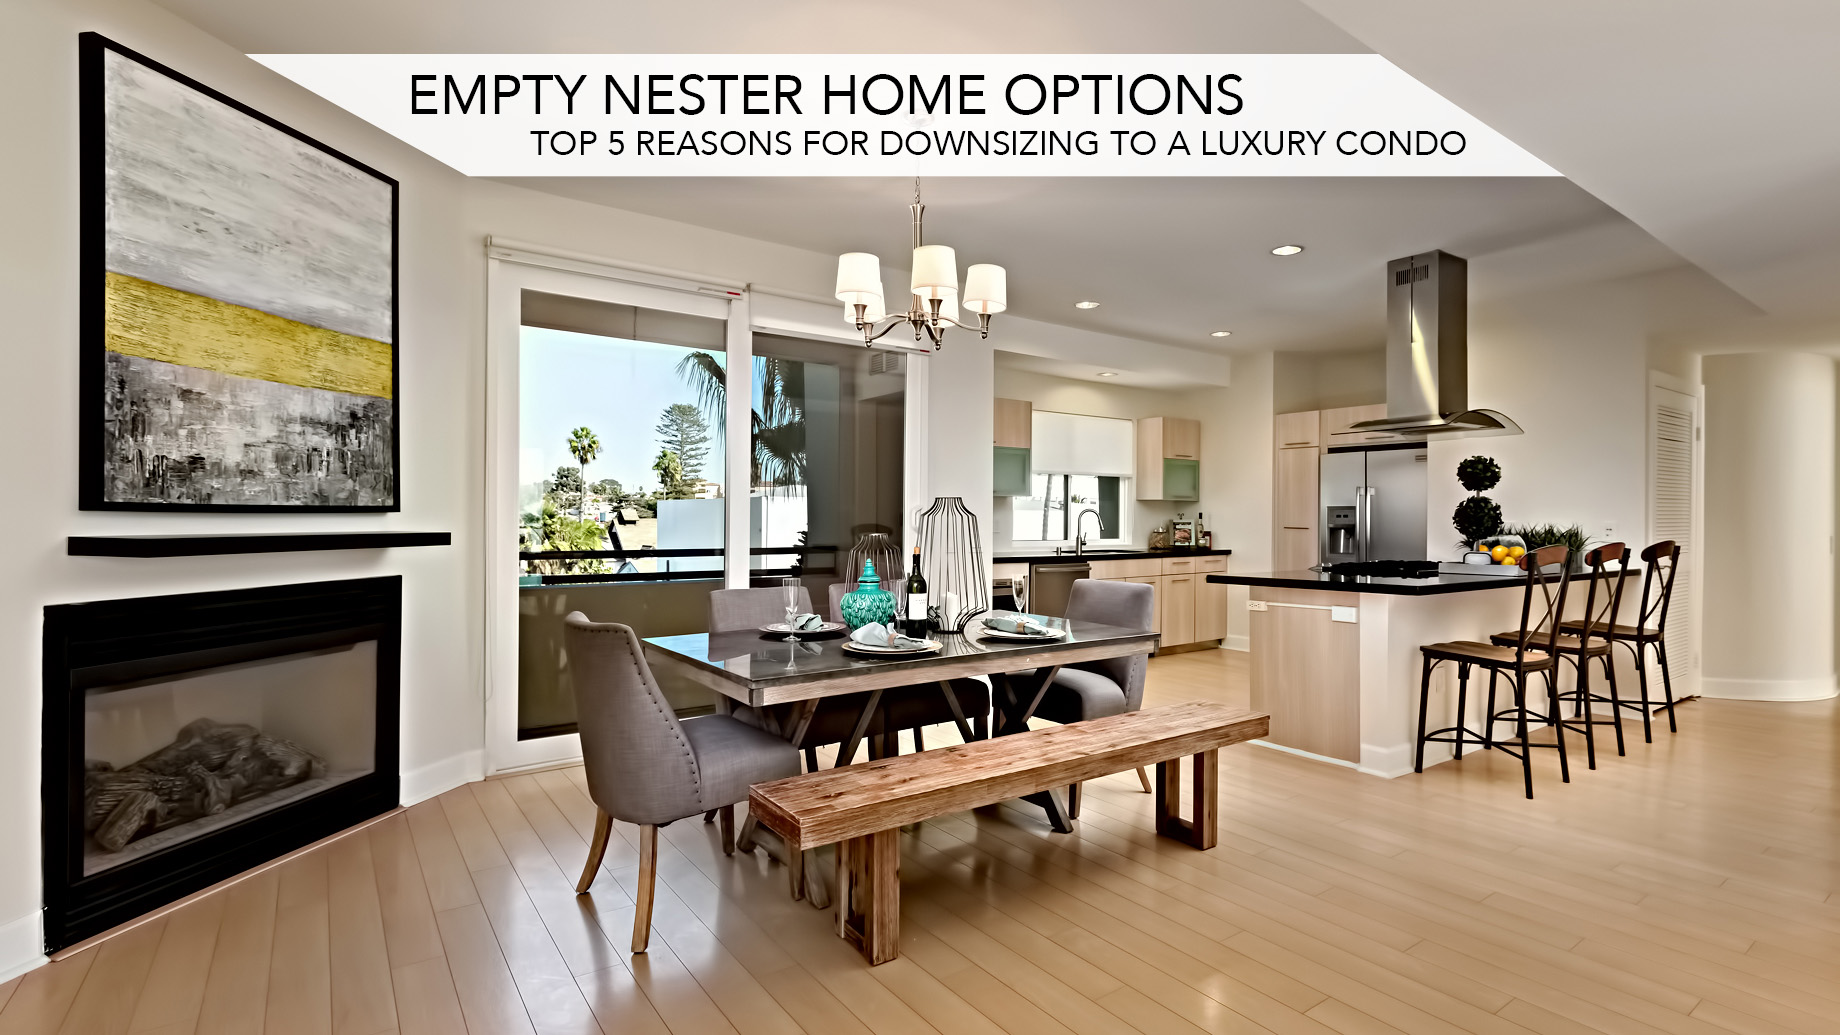 Empty Nester Home Options - Top 5 Reasons for Downsizing to a Luxury Condo